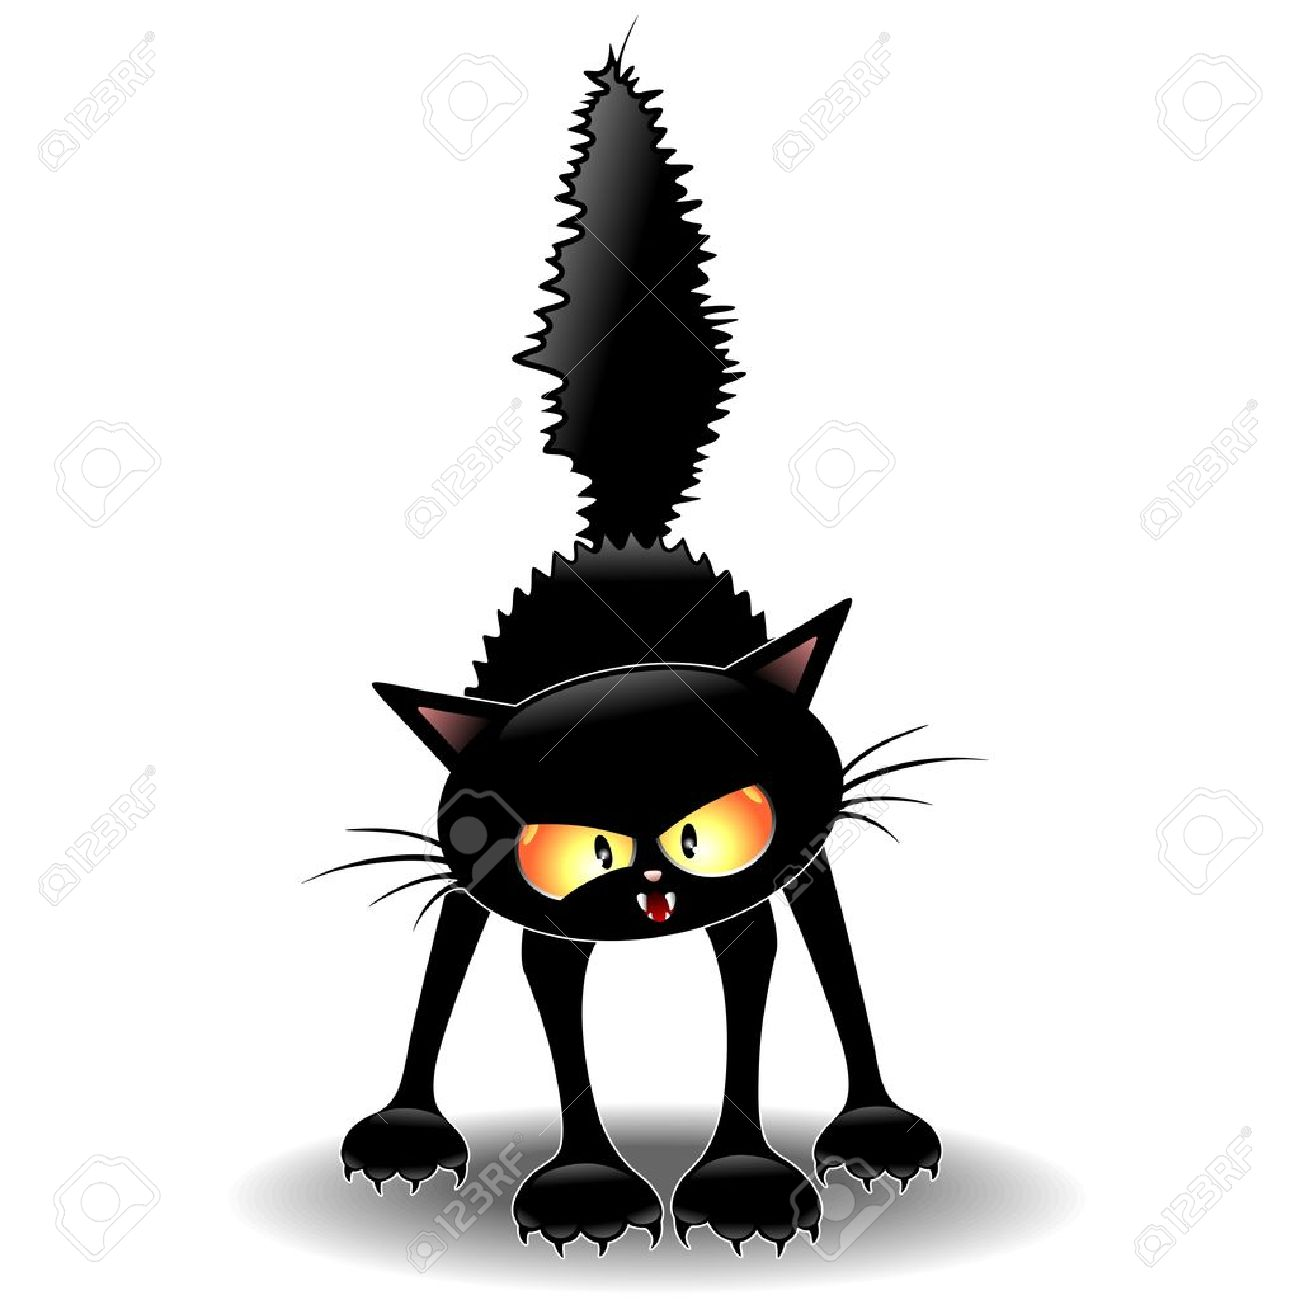 7 349 witches cat cliparts stock vector and royalty free witches